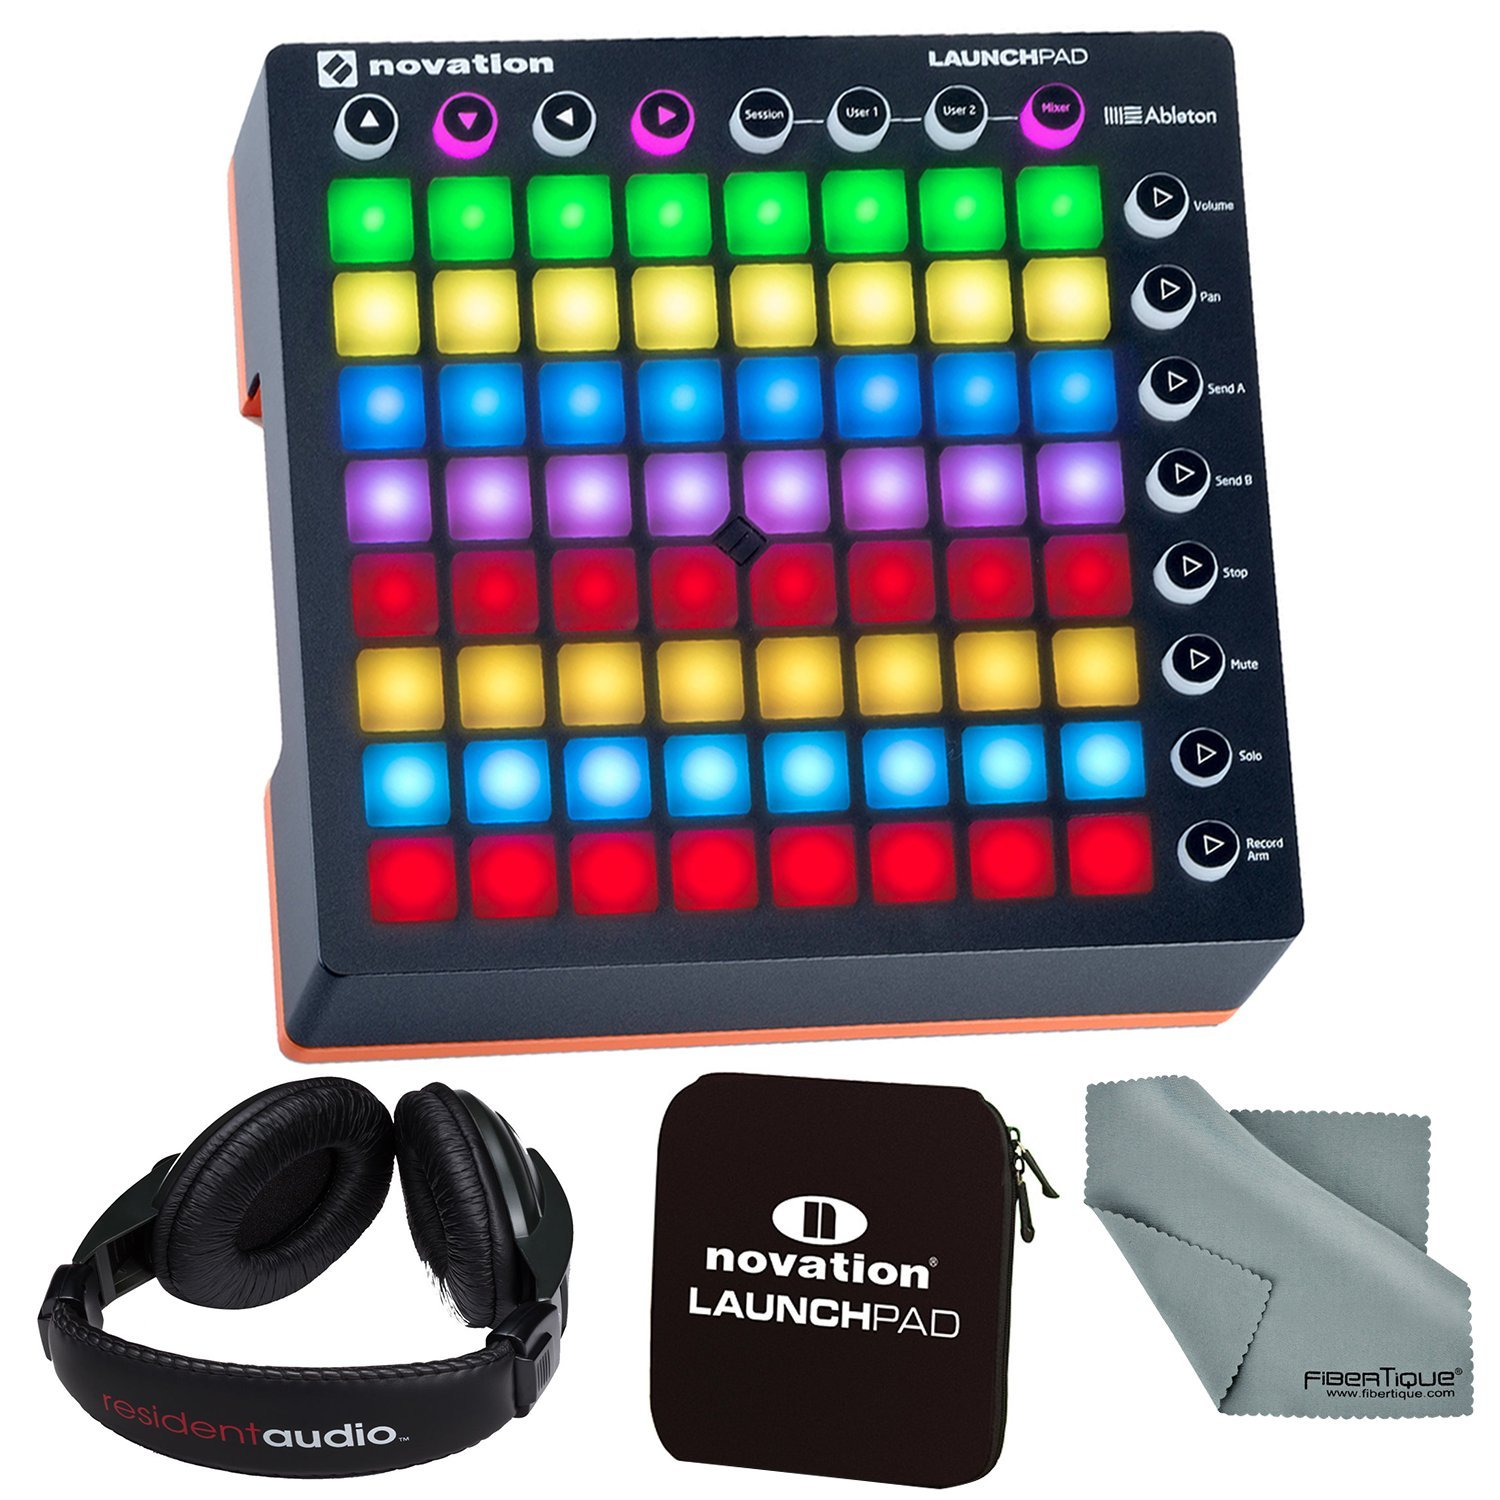 Novation Launchpad MK II Ableton LiveController Bundle with Novation Launchpad Soft Carry Sleeve + Headphones + FiberTique Cleaning Cloth by Photo Savings